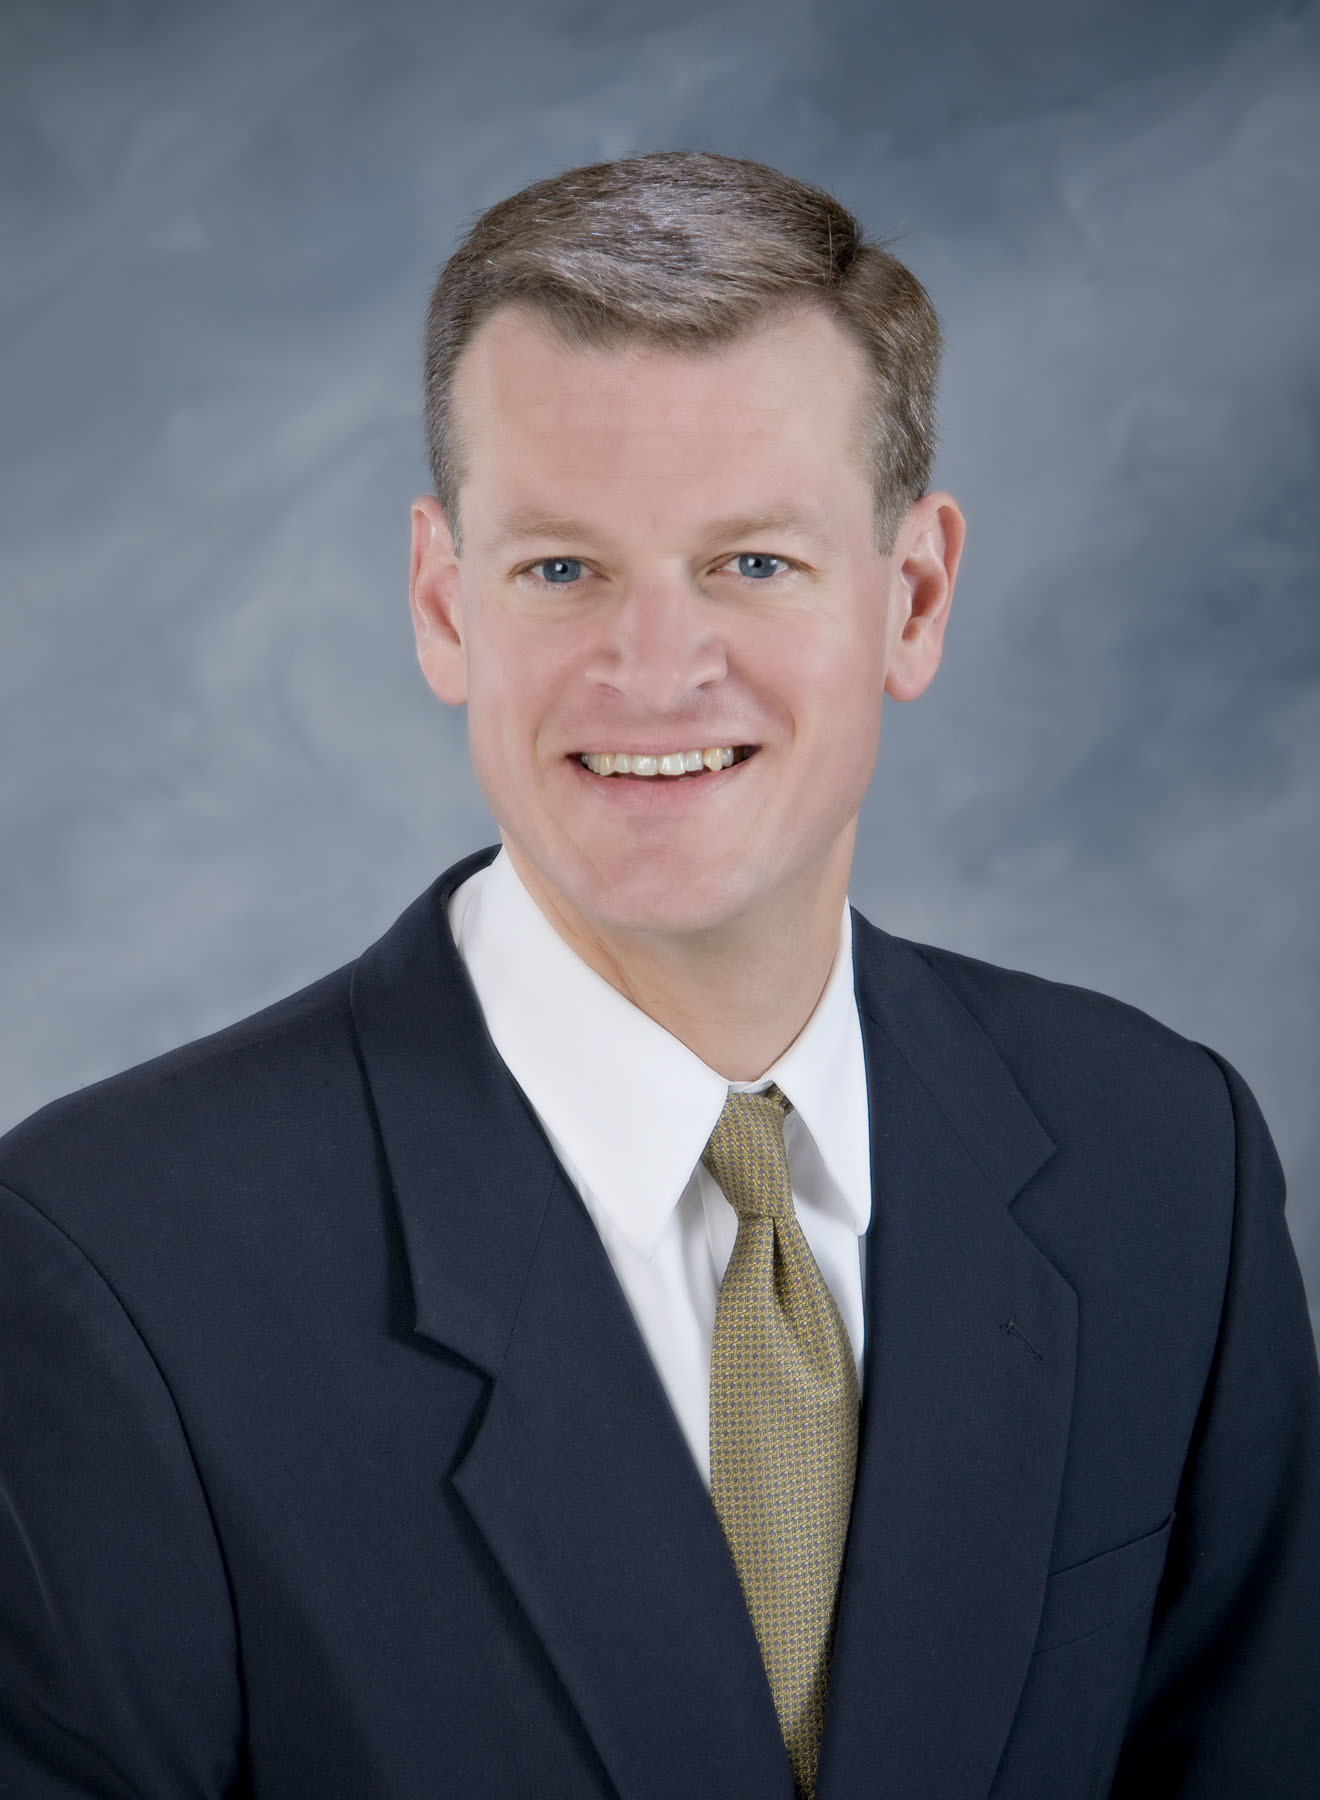 Scott stricklin embraces new role as gators athletics director orlando sentinel